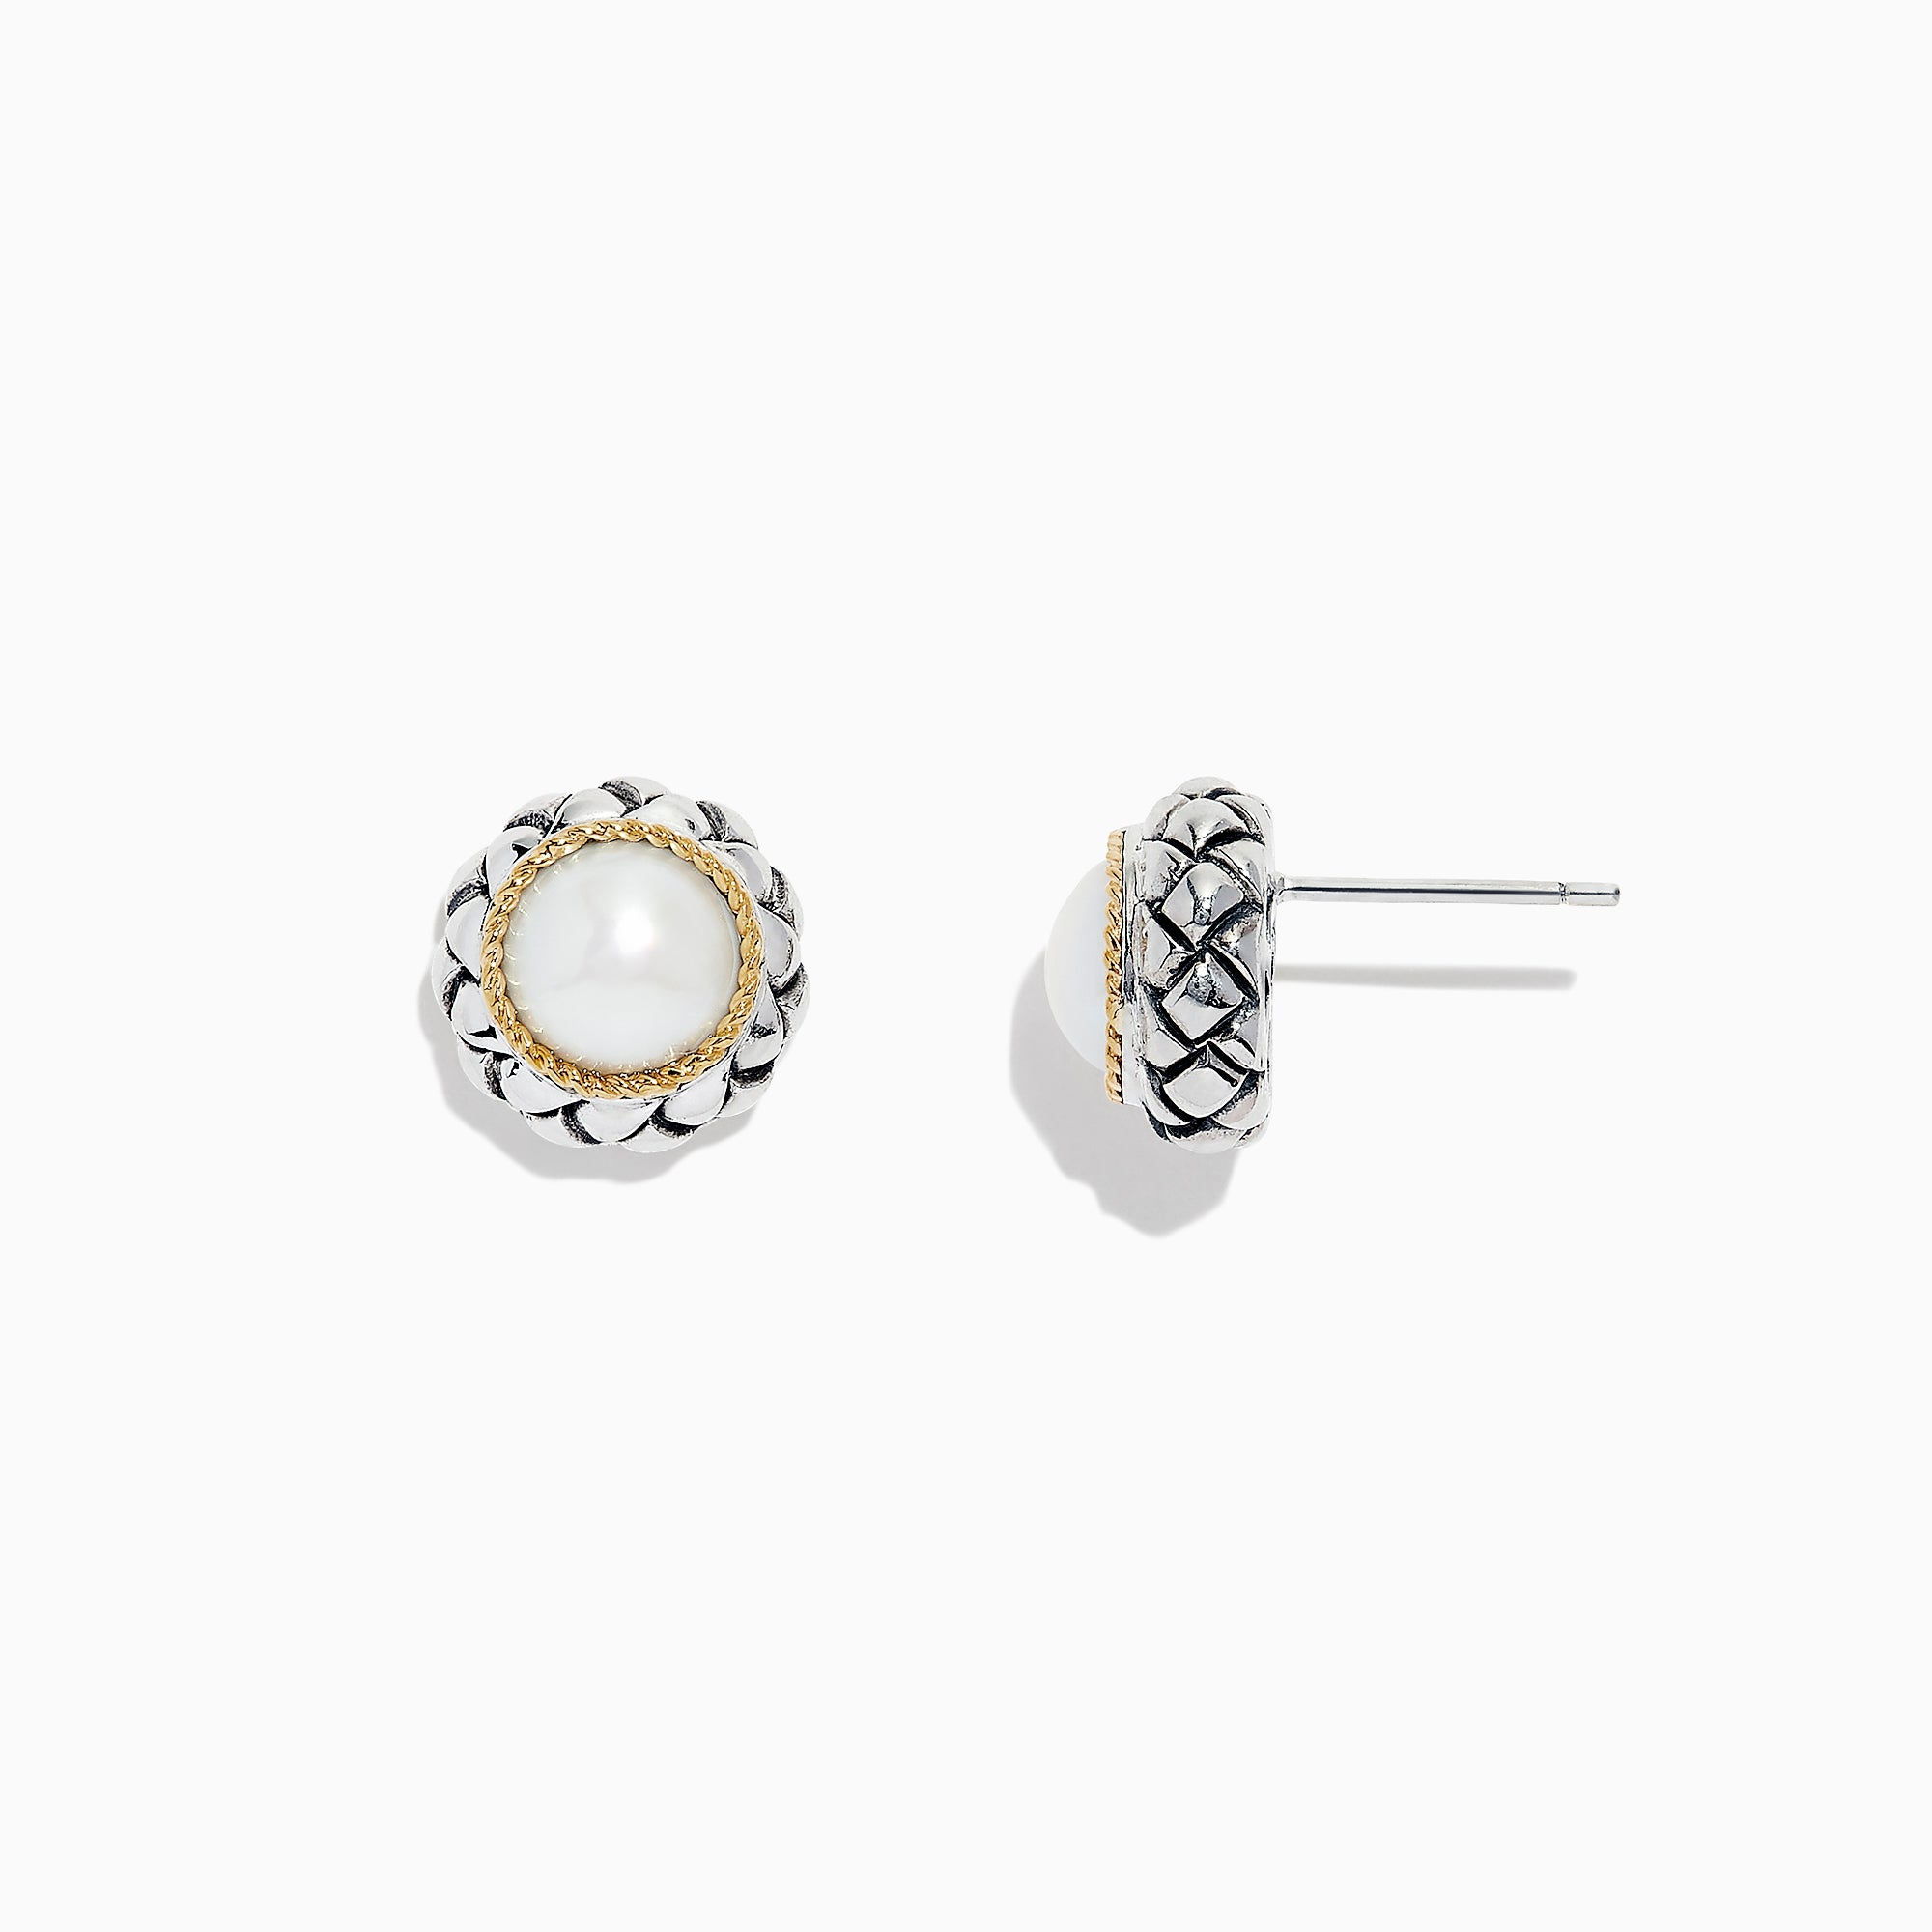 Effy 925 Sterling Silver & 18K Yellow Gold Cultured Fresh Water Pearl Stud Earrings